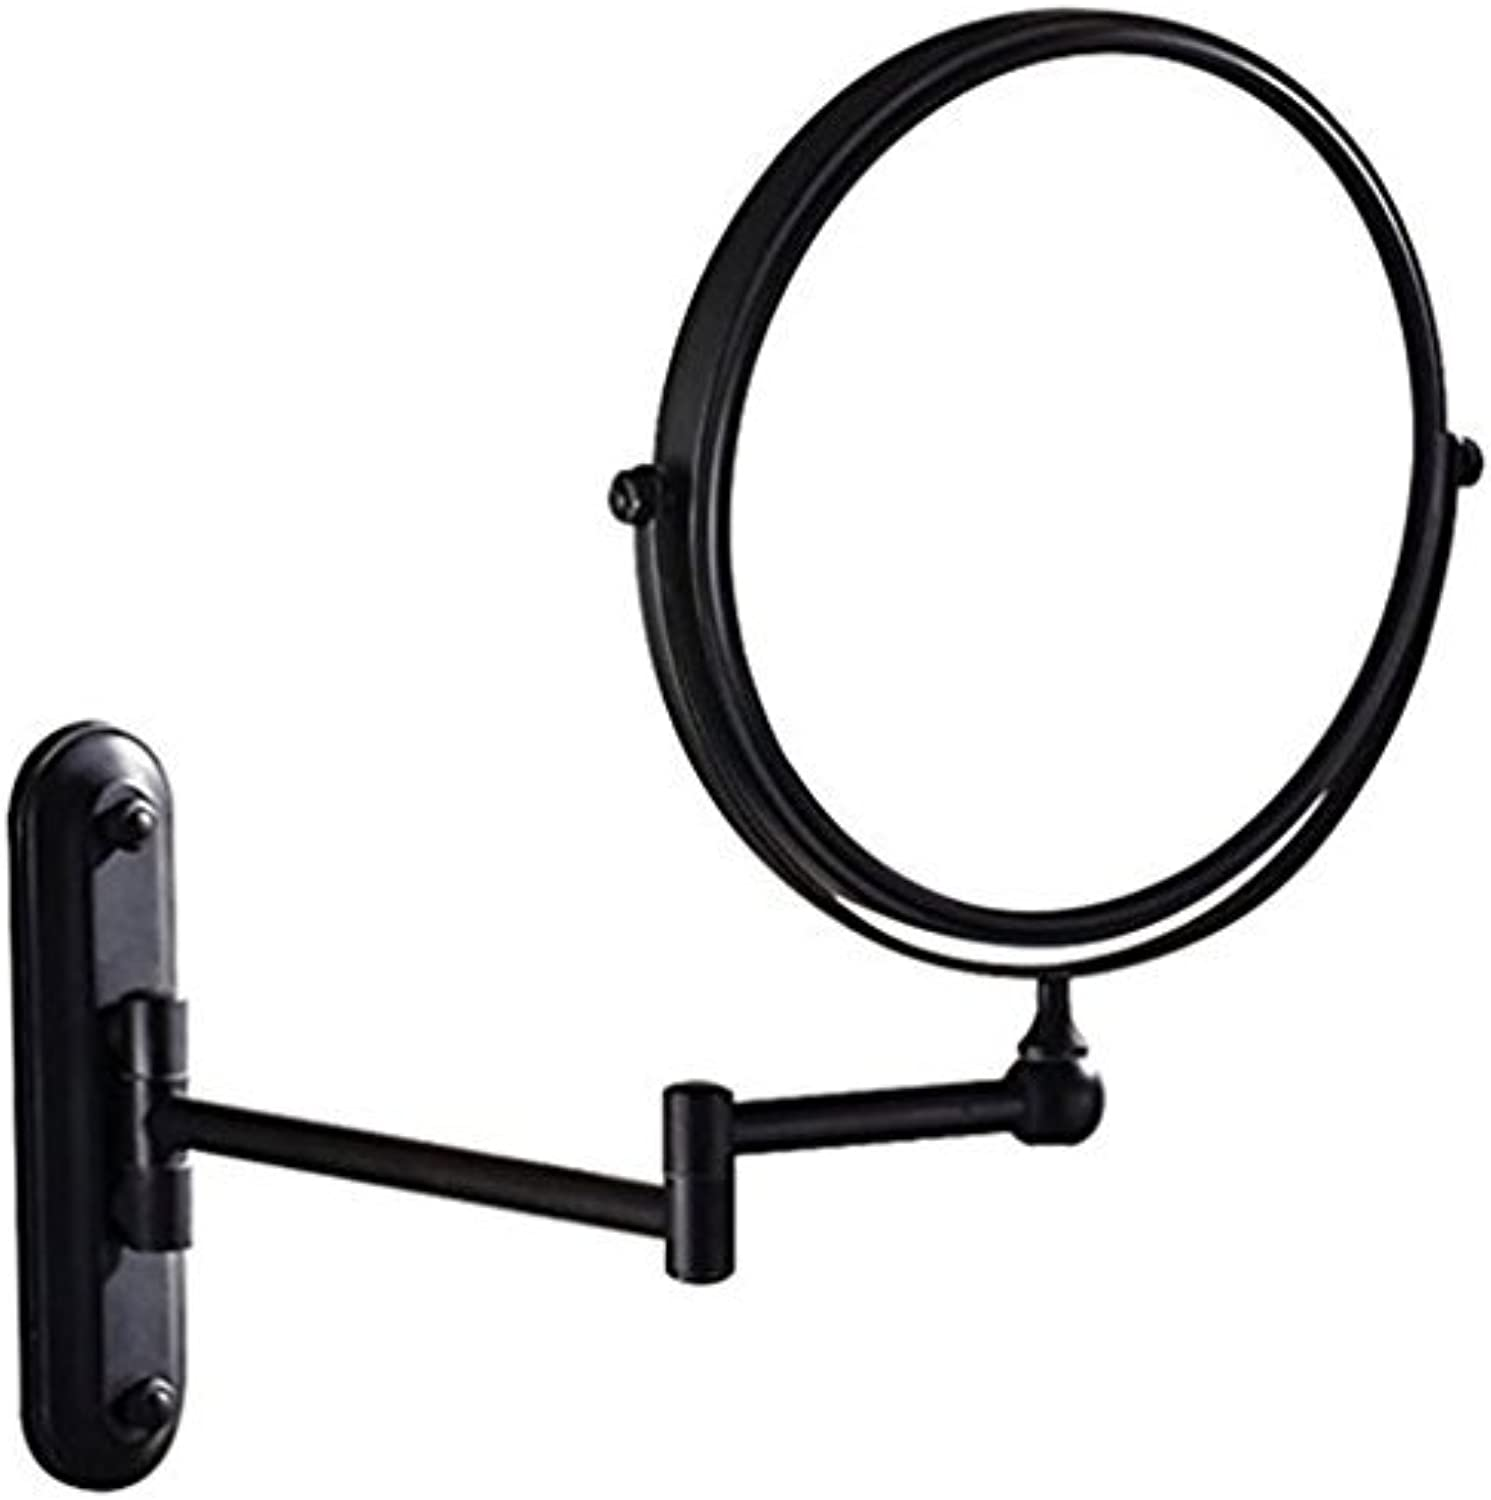 Sanliv 8 Inch Double Sided Makeup Mirror with 7x Magnification Wall Mounted Vanity Mirror, No Light, Oil-Rubbed Bronze